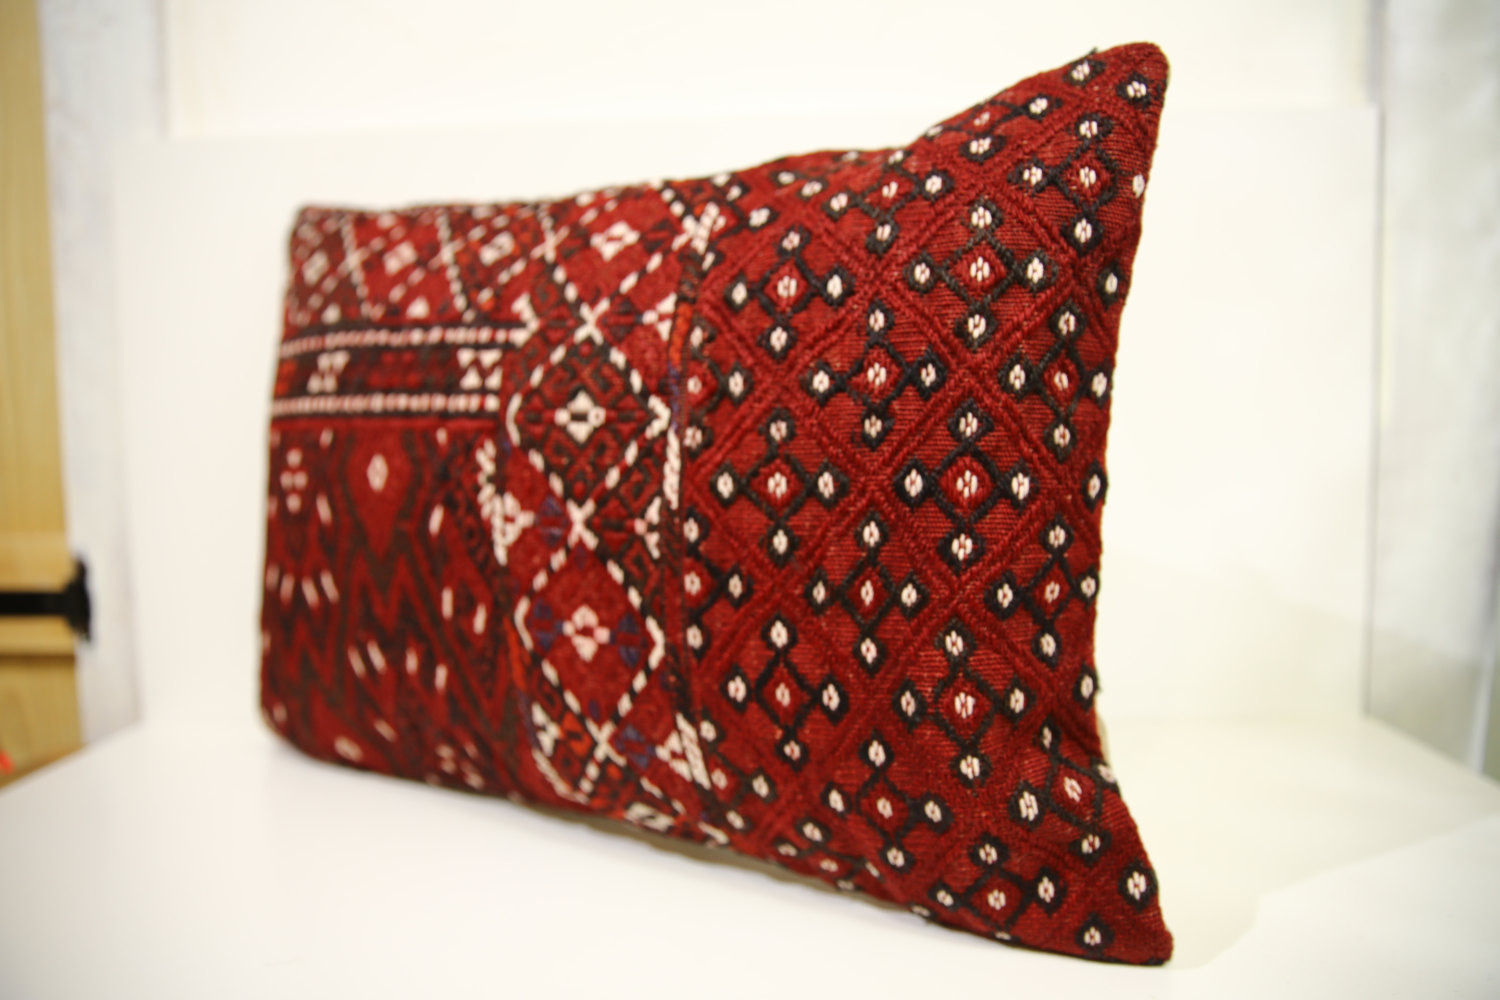 Kilim Pillows | 24x16 | Lumbar pillows | 1467 | Turkish pillows , throw pillows